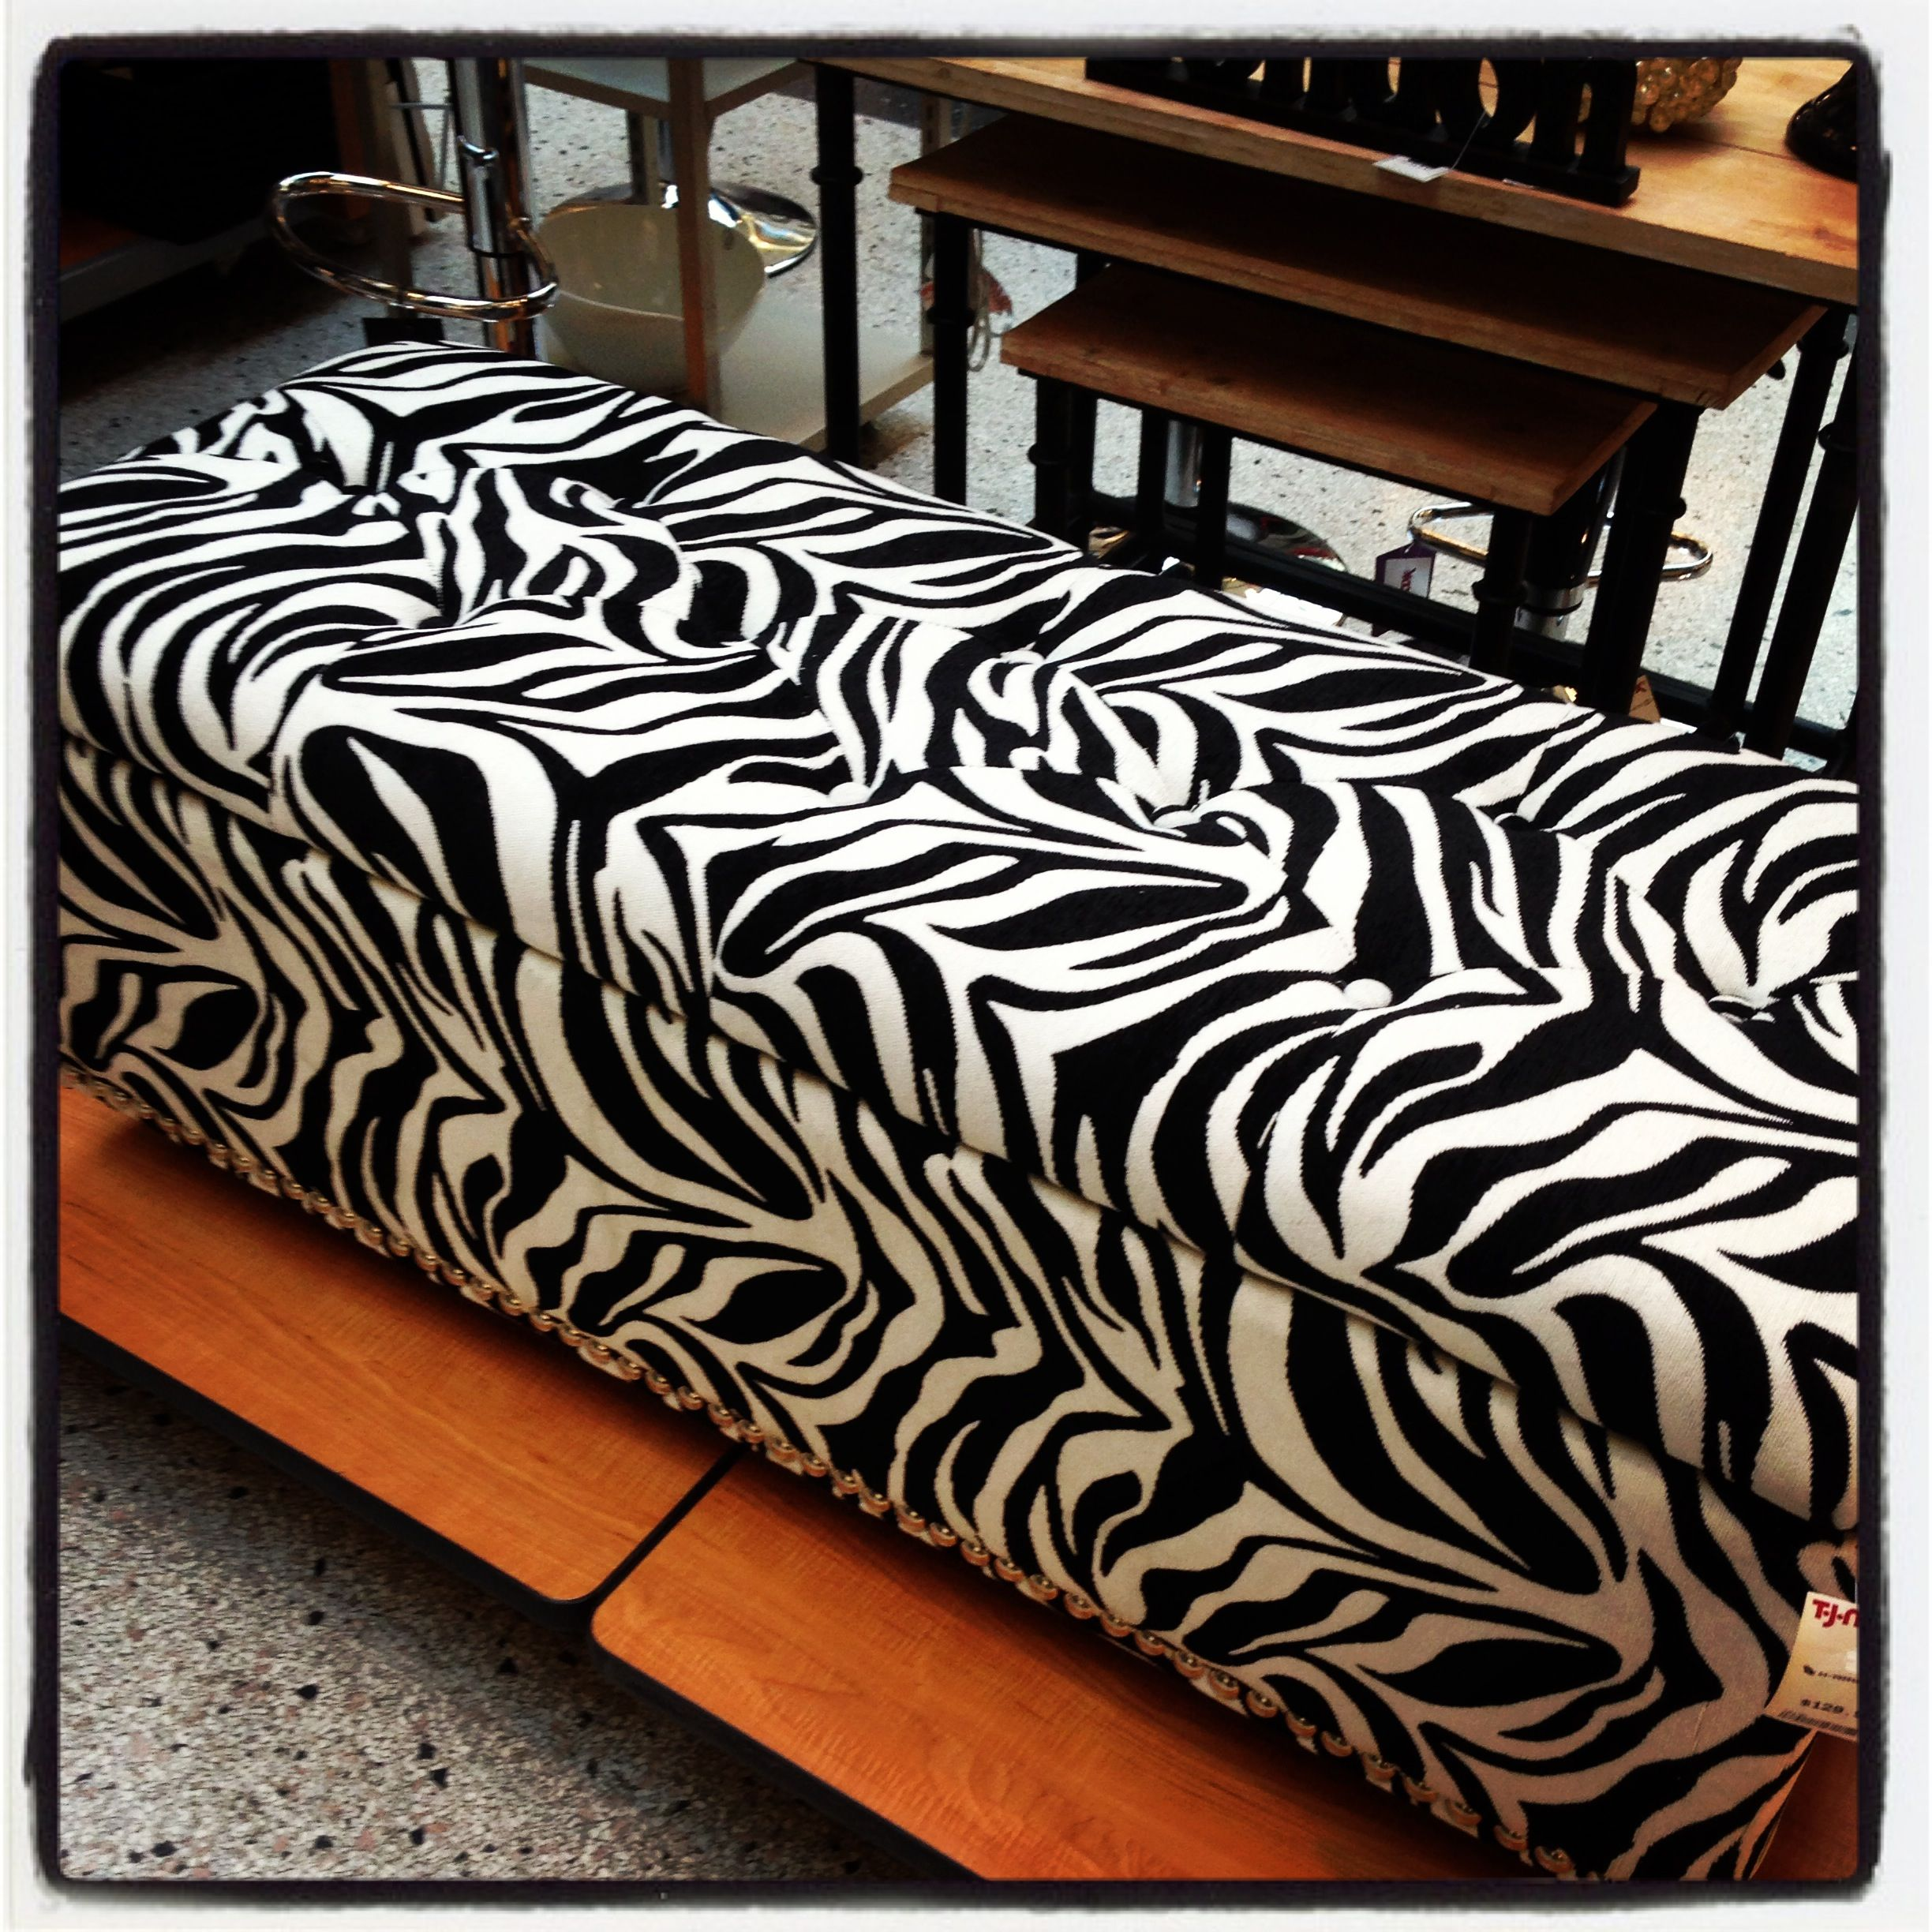 Zebra Max Storage Bench For The Foot Of Your Beef Home Decor Zebra Storage Bench